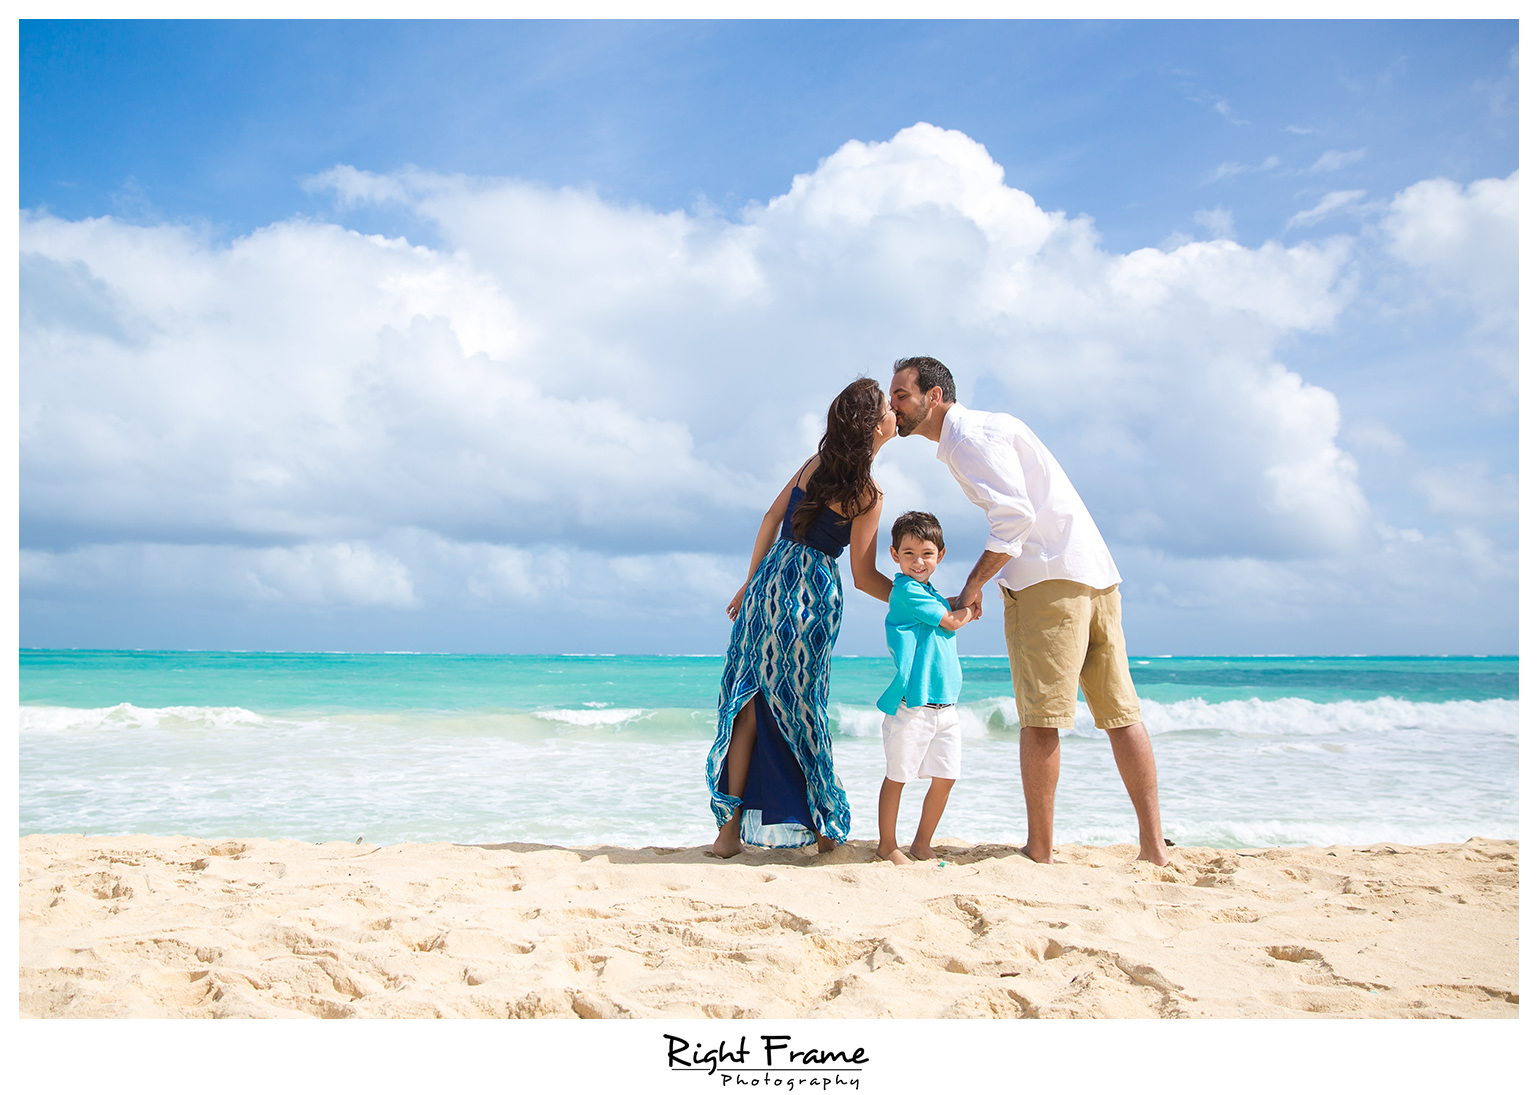 Beach Wedding Ceremony Oahu: Oahu Hawaii Family Photography By RIGHT FRAME PHOTOGRAPHY